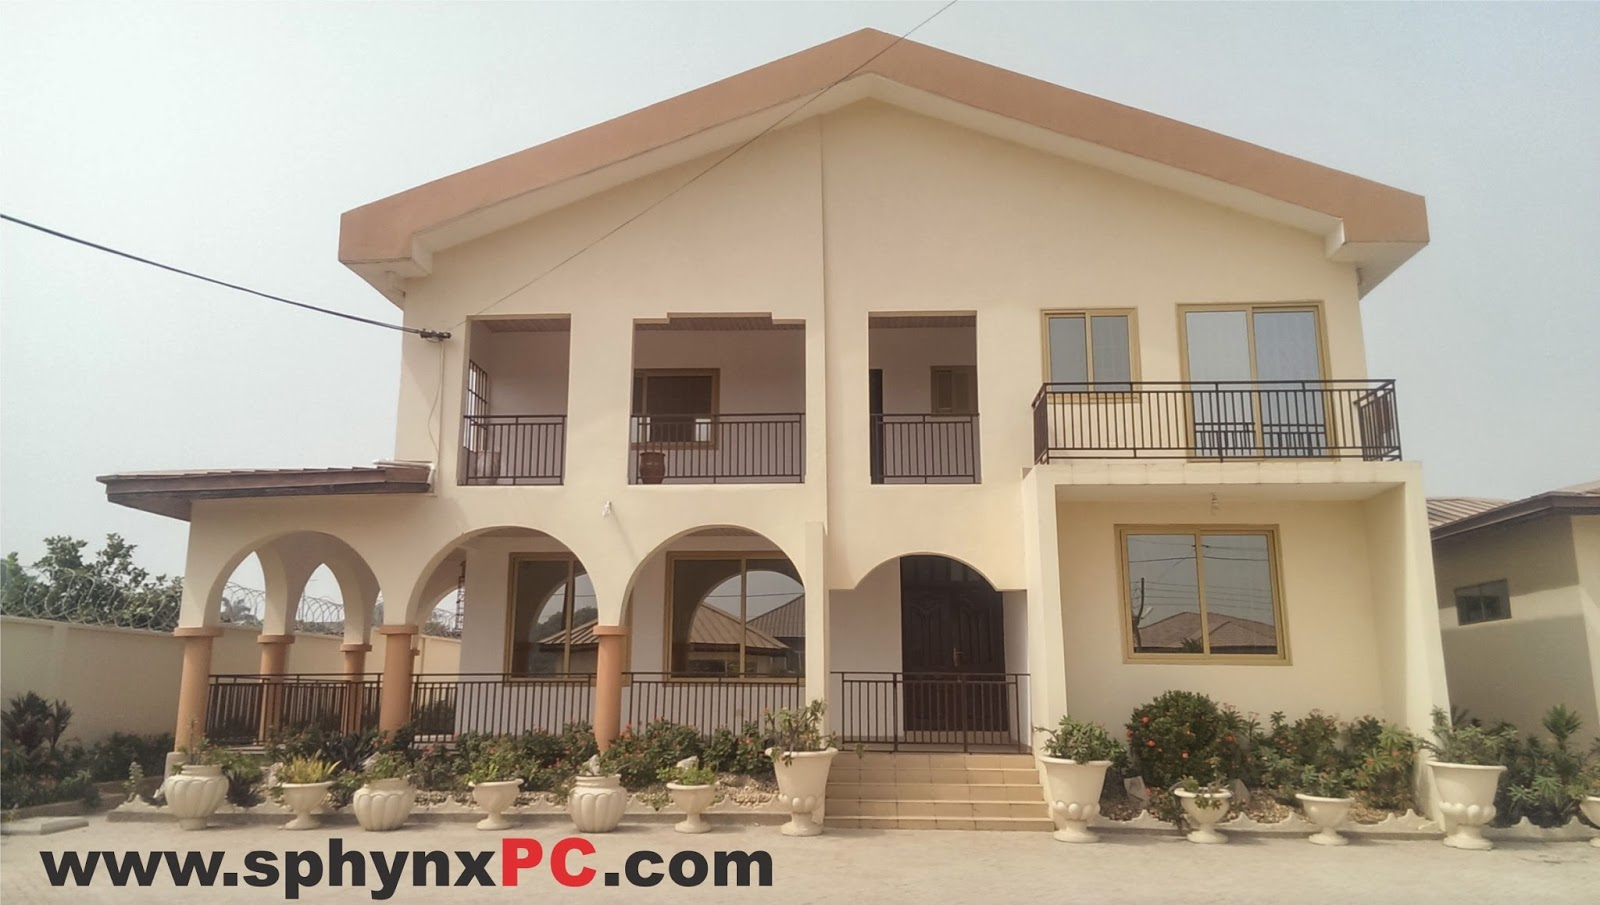 Sphynx east airport accra ghana house for sale visit for Modern houses in ghana